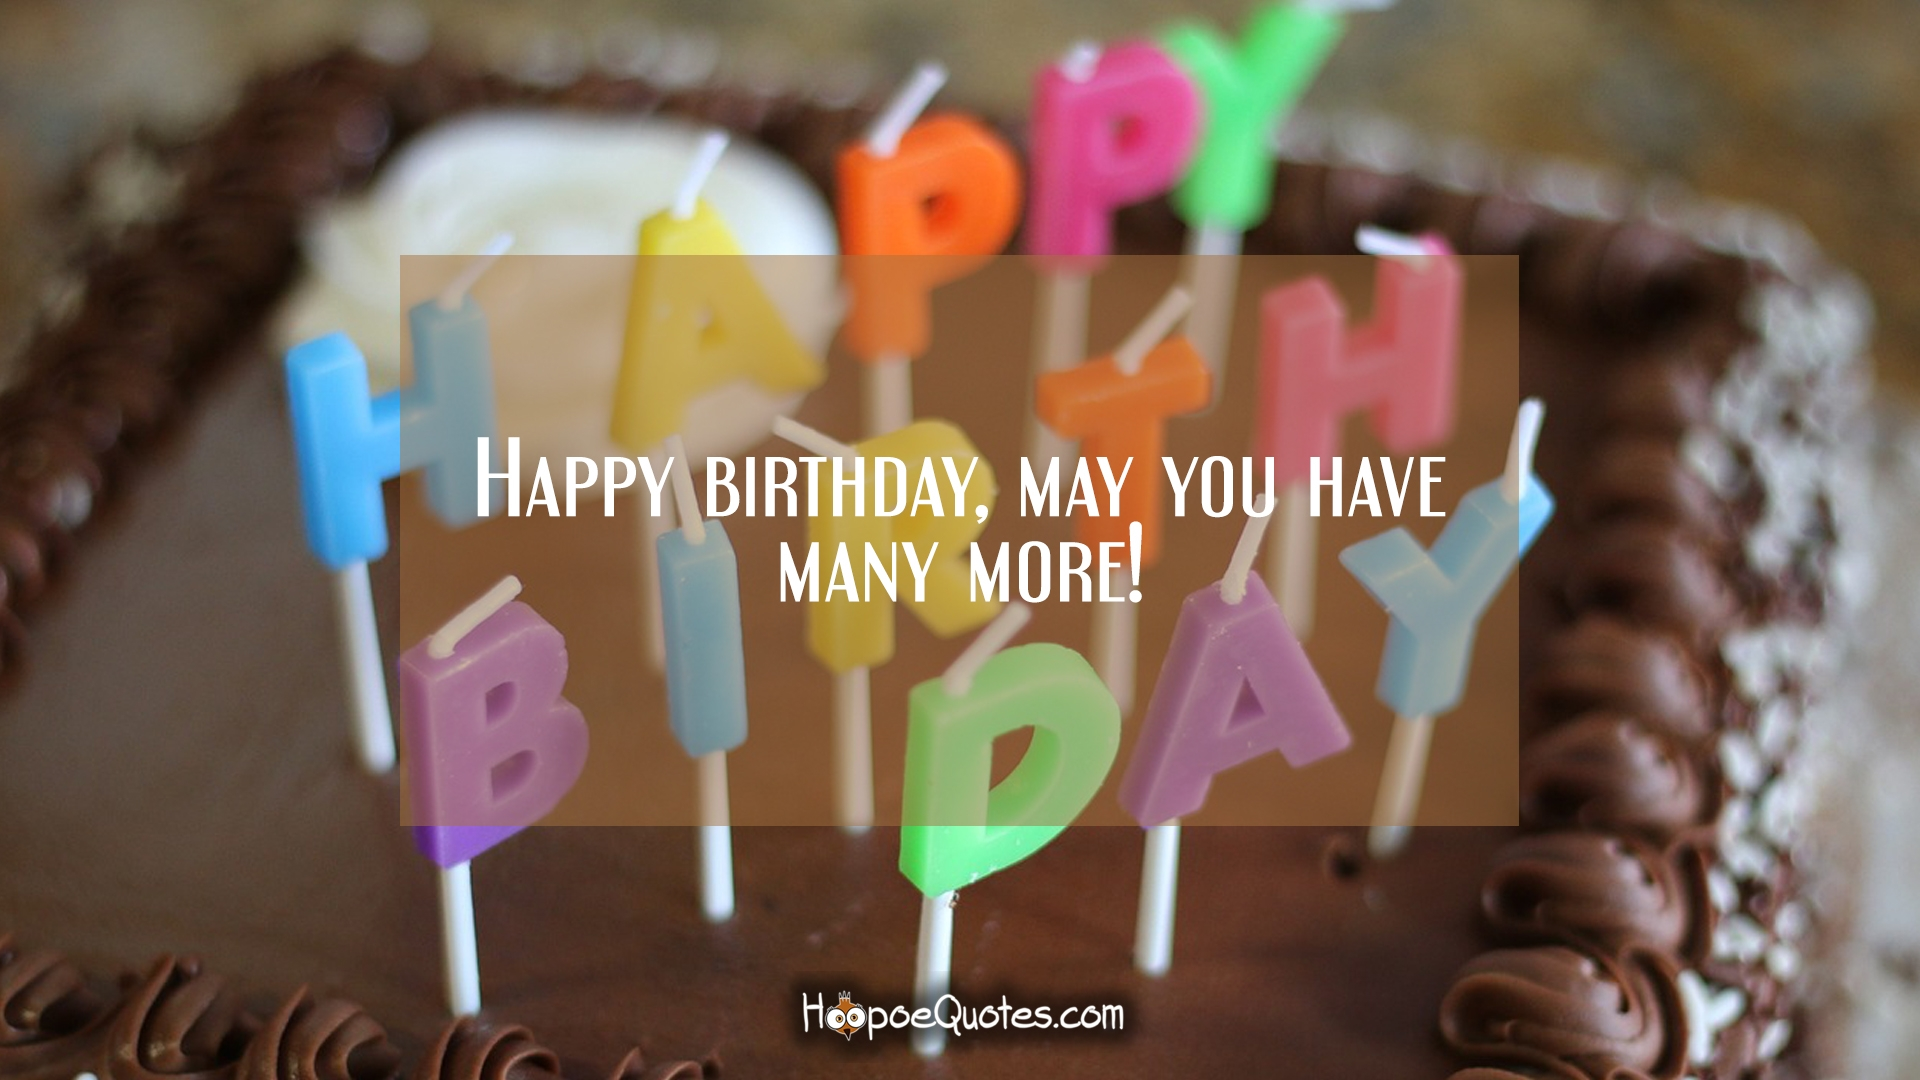 Happy Birthday May You Have Many More Hoopoequotes